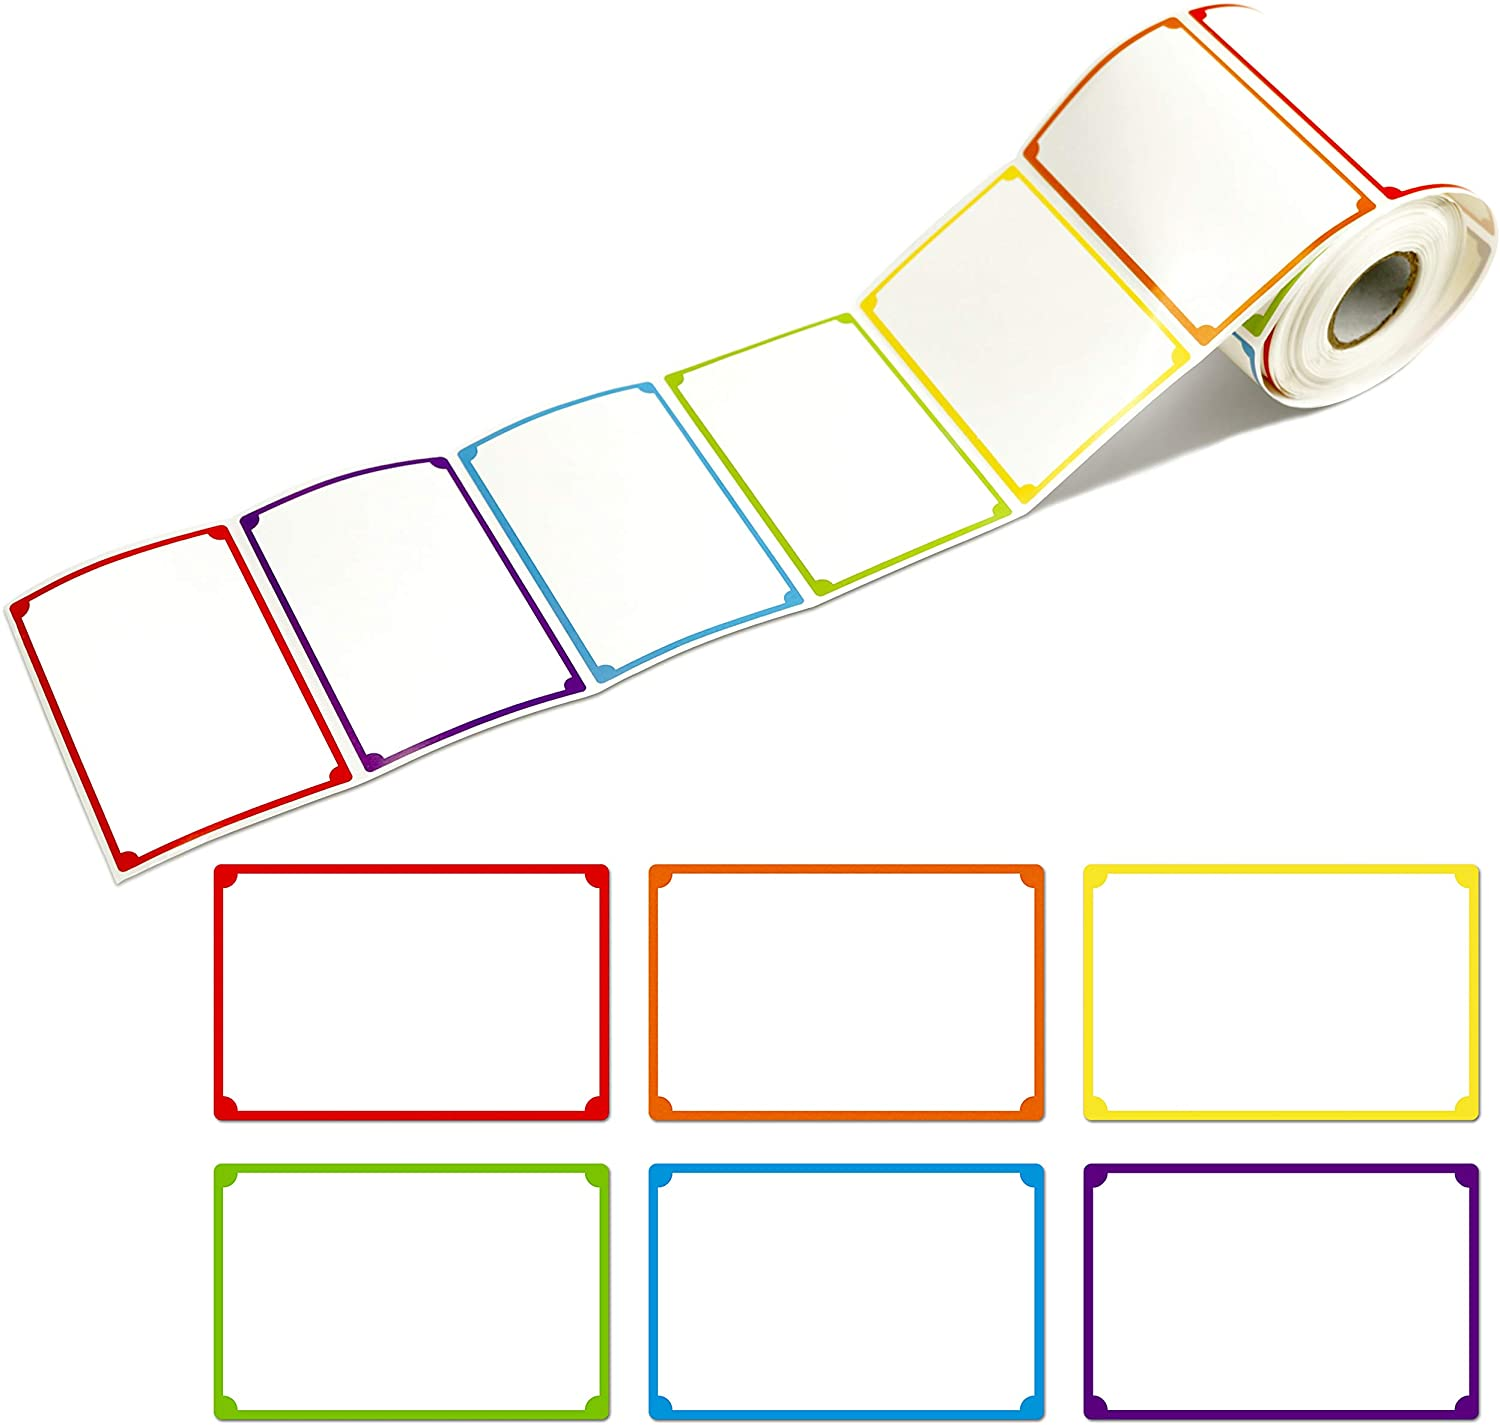 "300pcs 6 Colors Plain Name tag Labels with Perforated Line for School Office Home (3.5""x2.2"" Each) …"